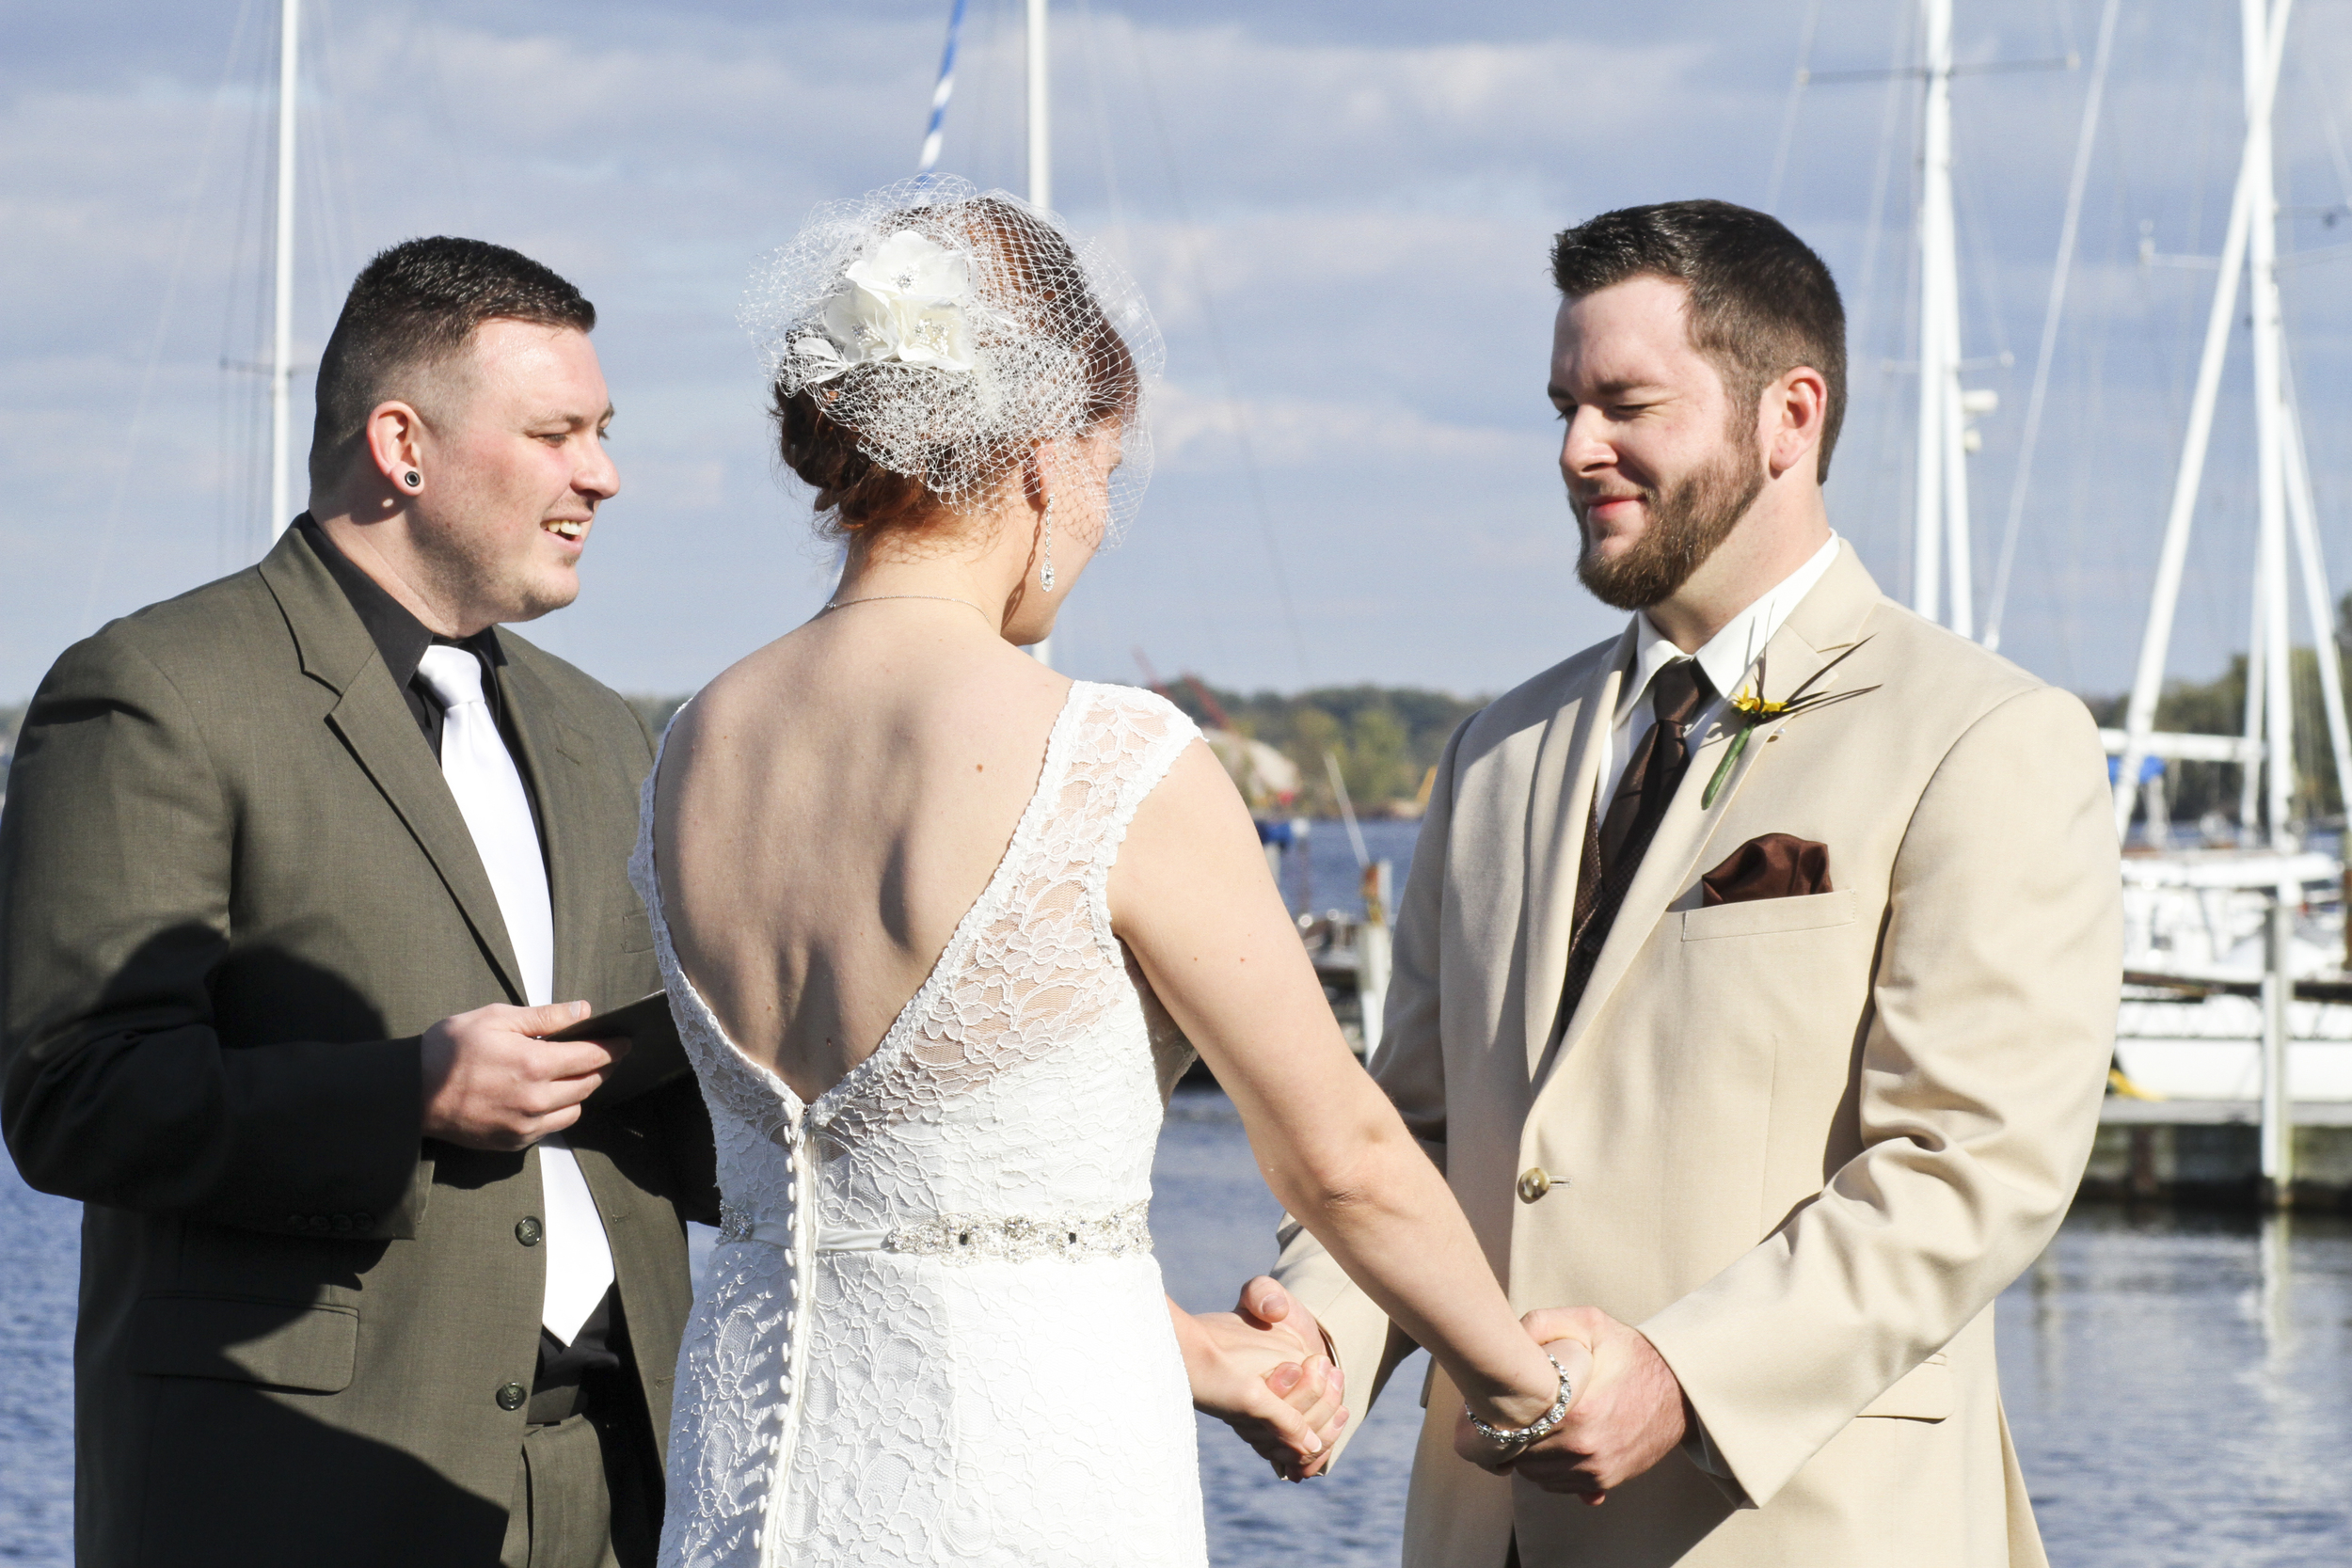 Right on the water! Beautiful place for a ceremony. © 2014 Shealyn McGee-Sarns